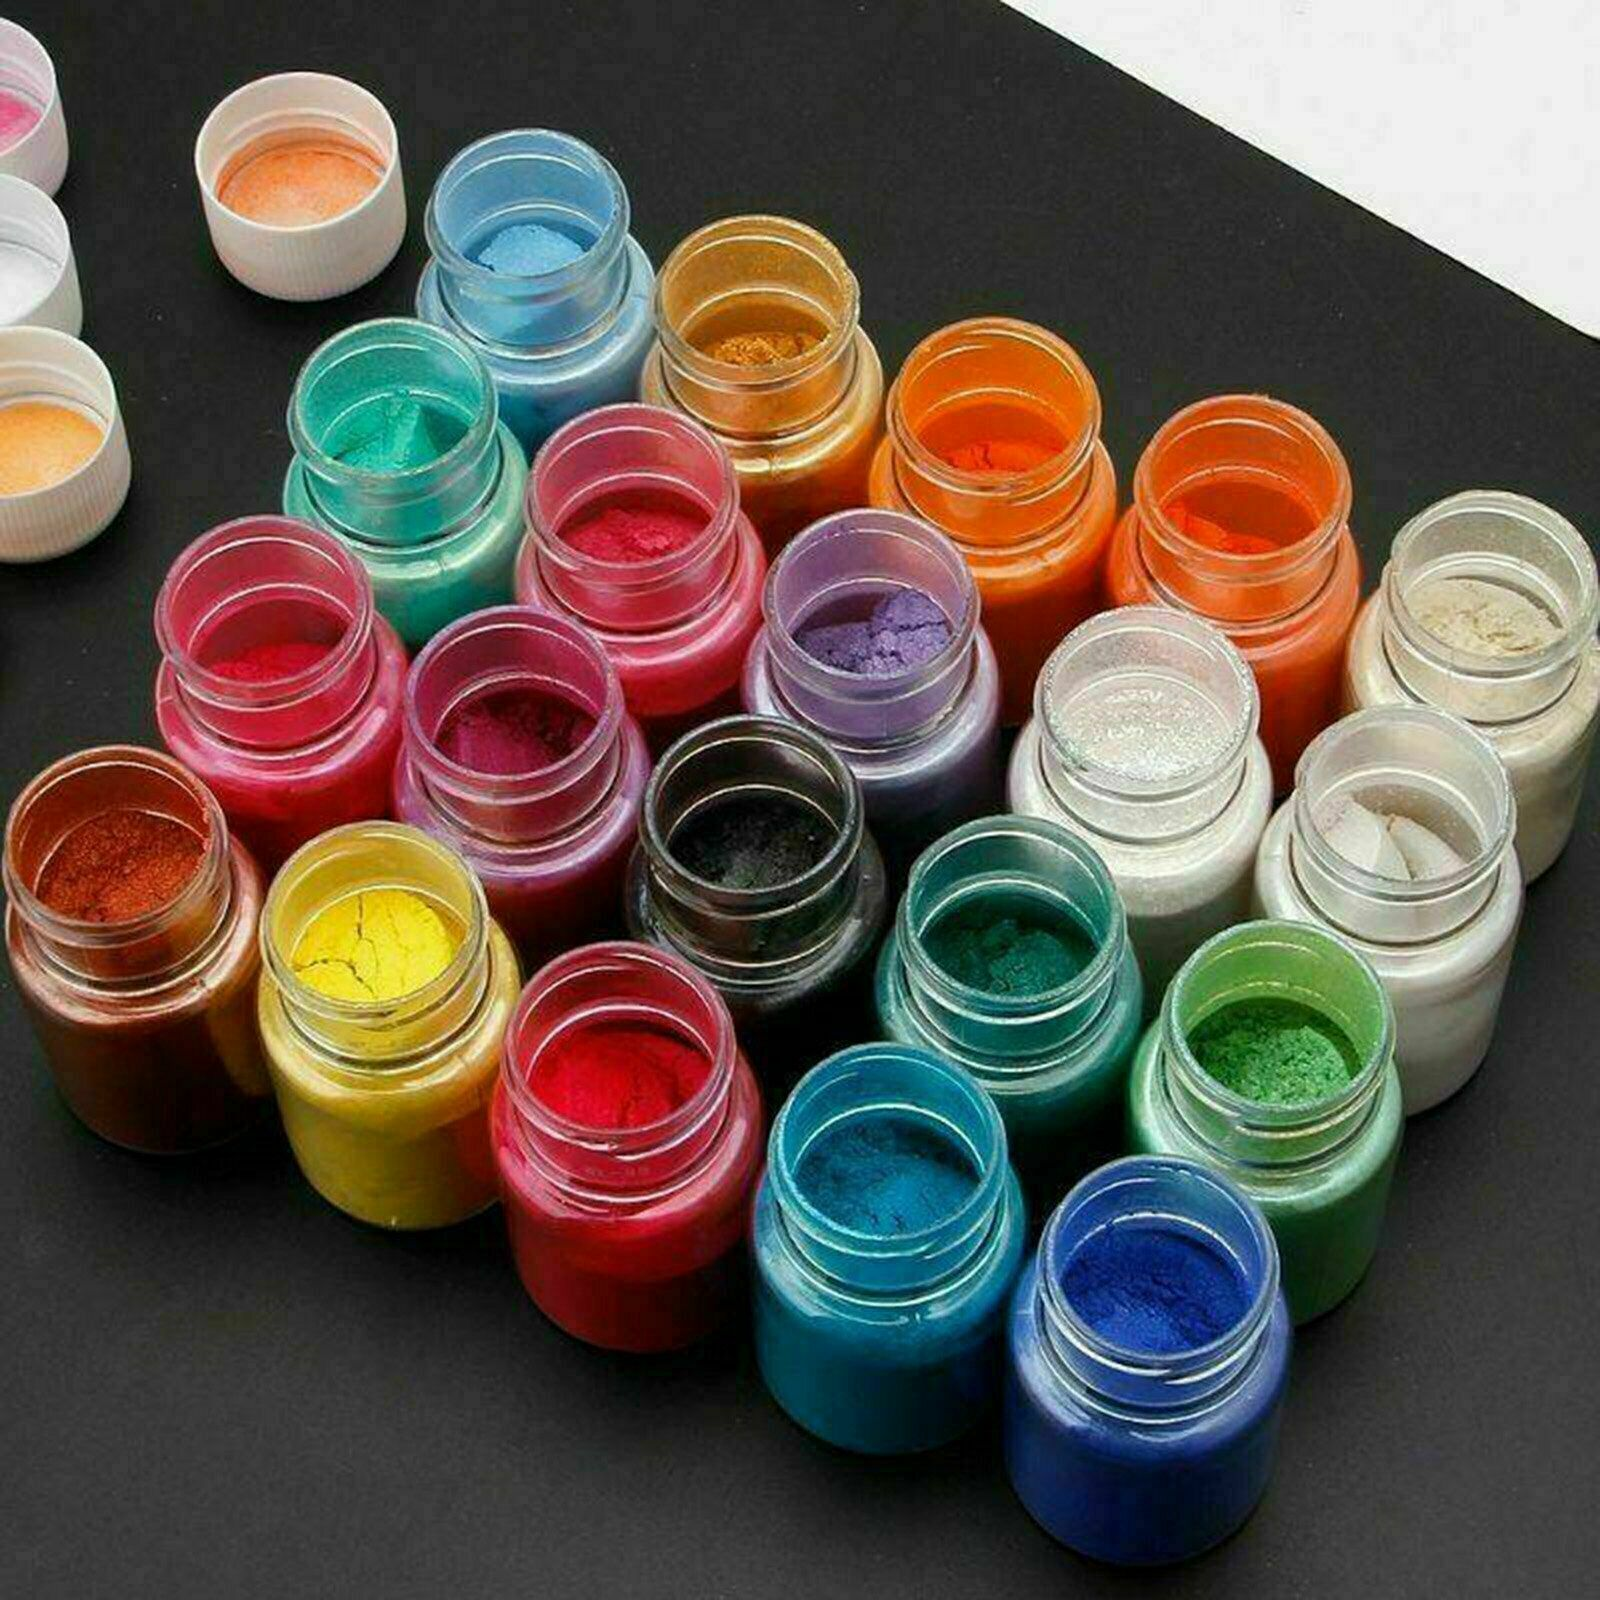 Ozoffer 8pcs Pearl Pigment Powder for Epoxy Resin Floors Metallic Dye Ultra Mixed Color